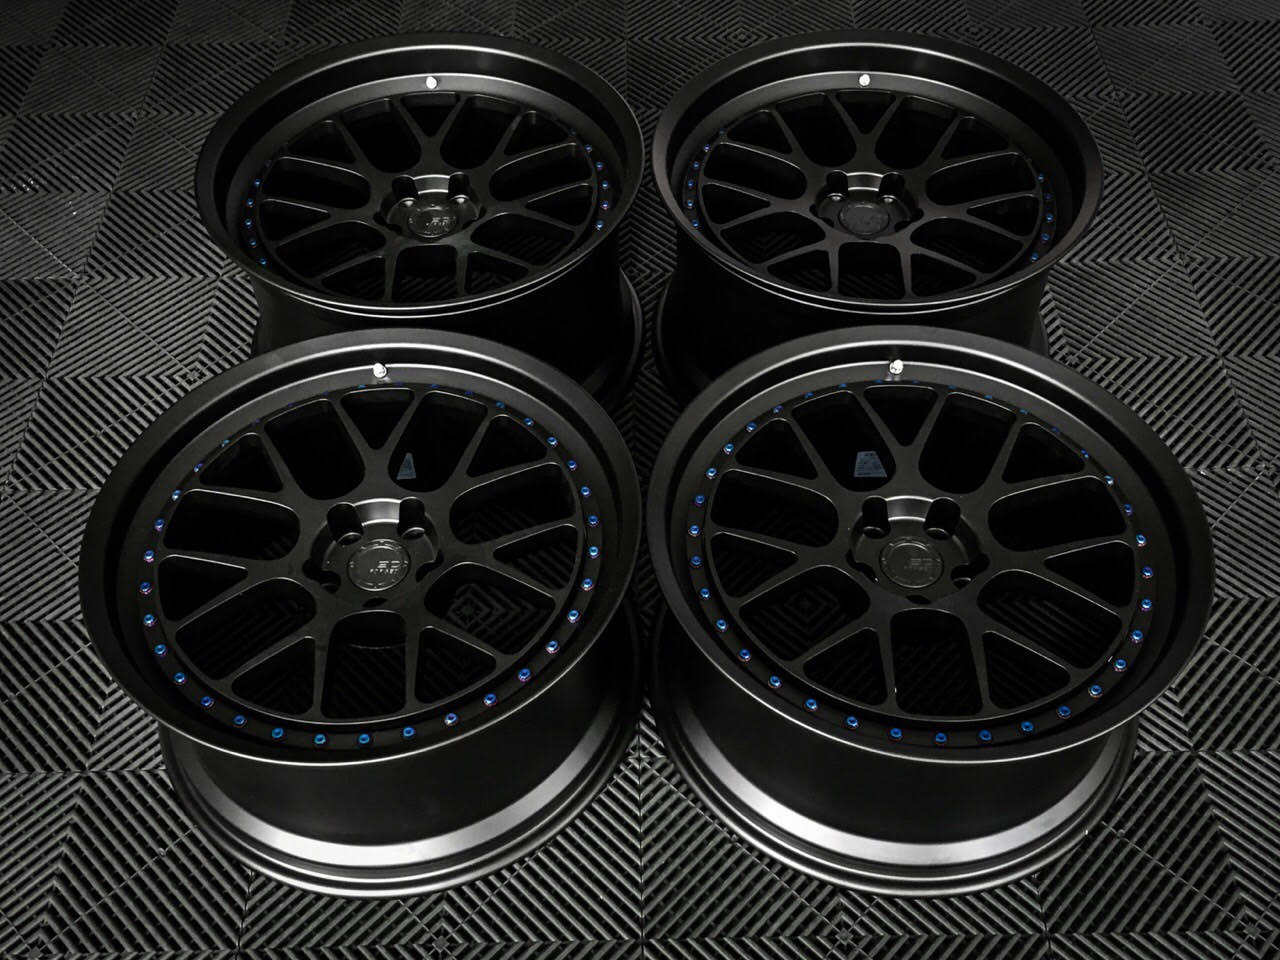 BC-FORGED-LE72-FORGED-MESH-CONCAVE-BLACK-WHEELS.jpg